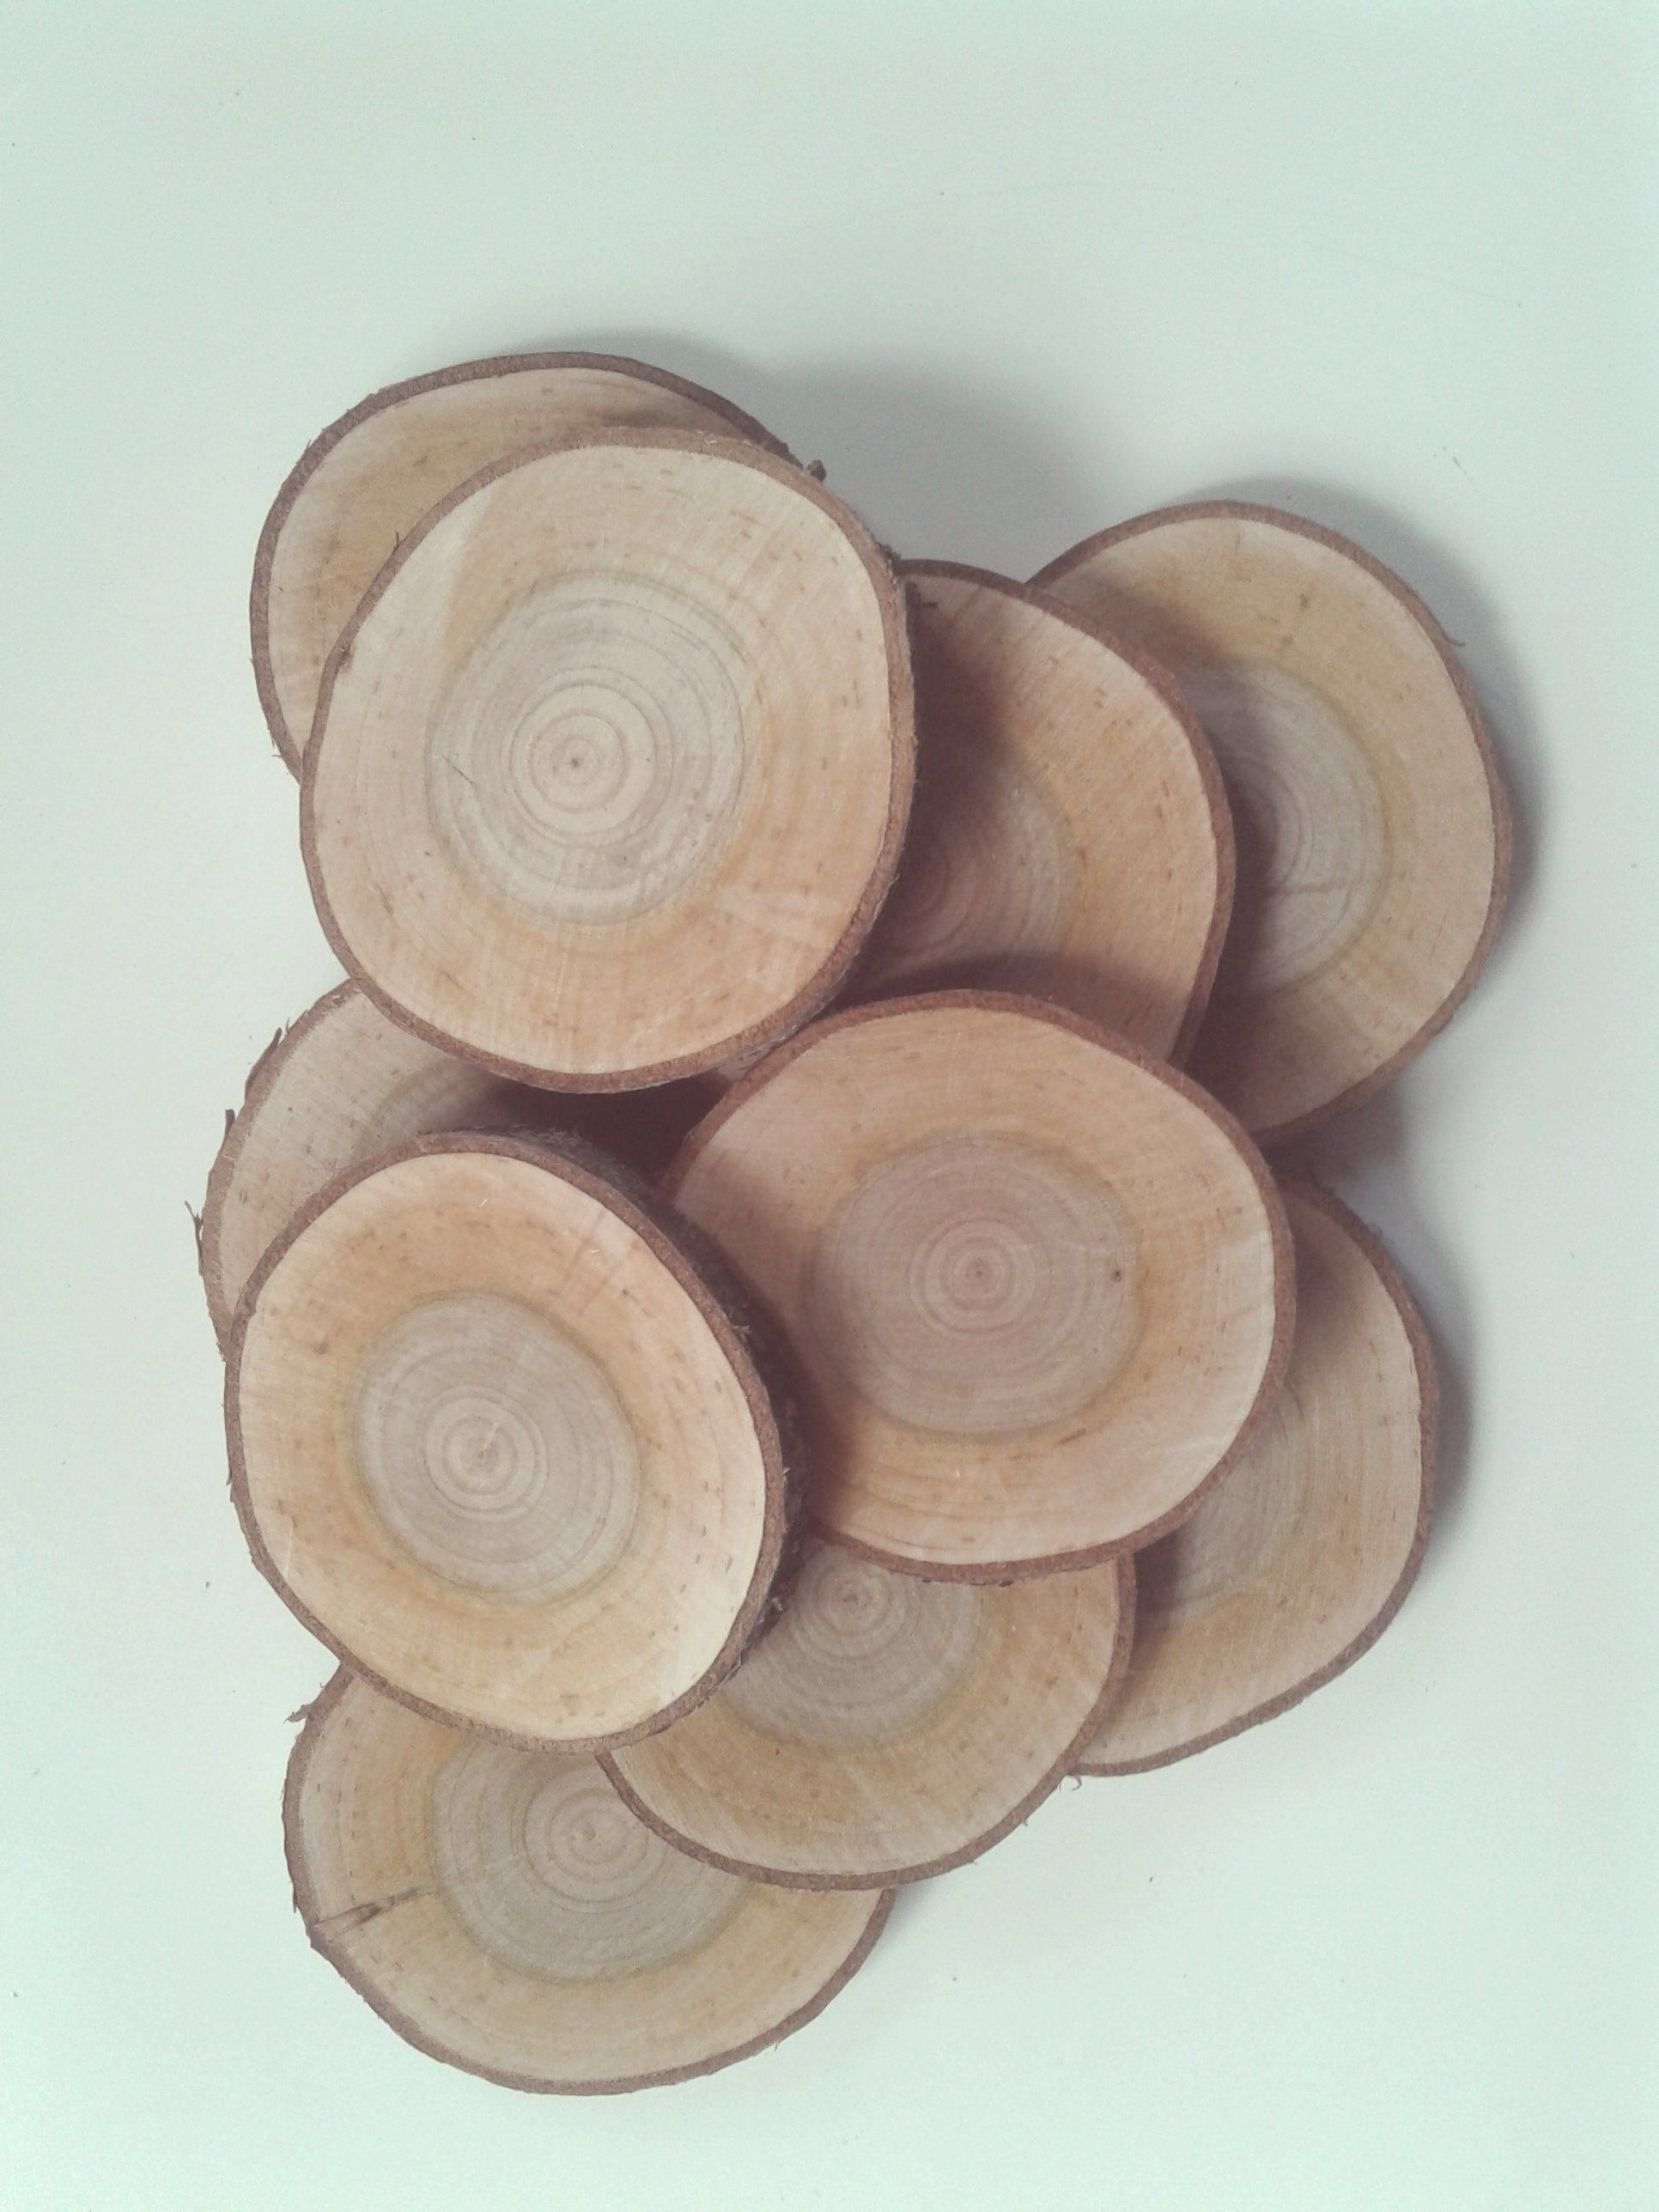 10 Cherry 2 7 8 3 1 2 In Wood Slices Blank Wooden Wedding Favors Bulk Tree Slab Ornaments Log Discs Pyrography Supplies What Sells On Etsy Etsy Decor Tree Slab